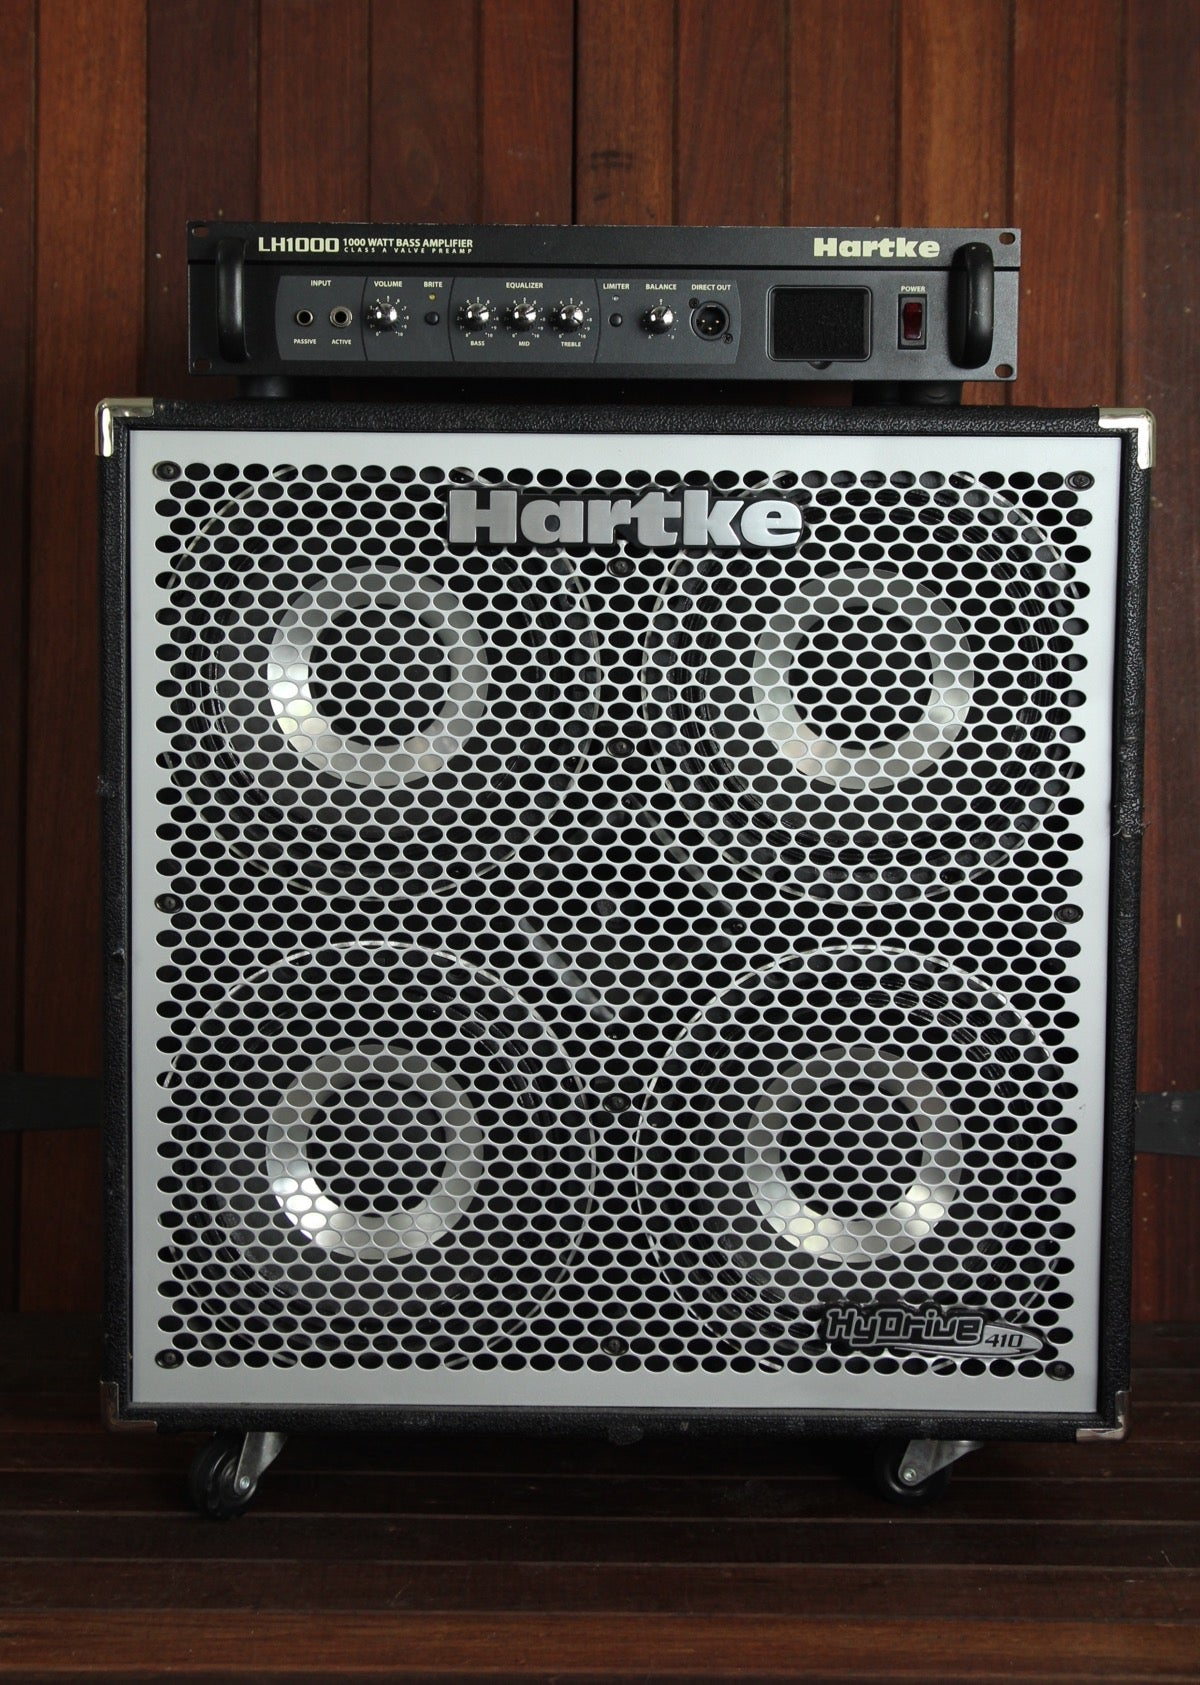 it bass amplifier unit amp of with on classic an large a wiki cabinet wikipedia sitting ampeg top speaker svt